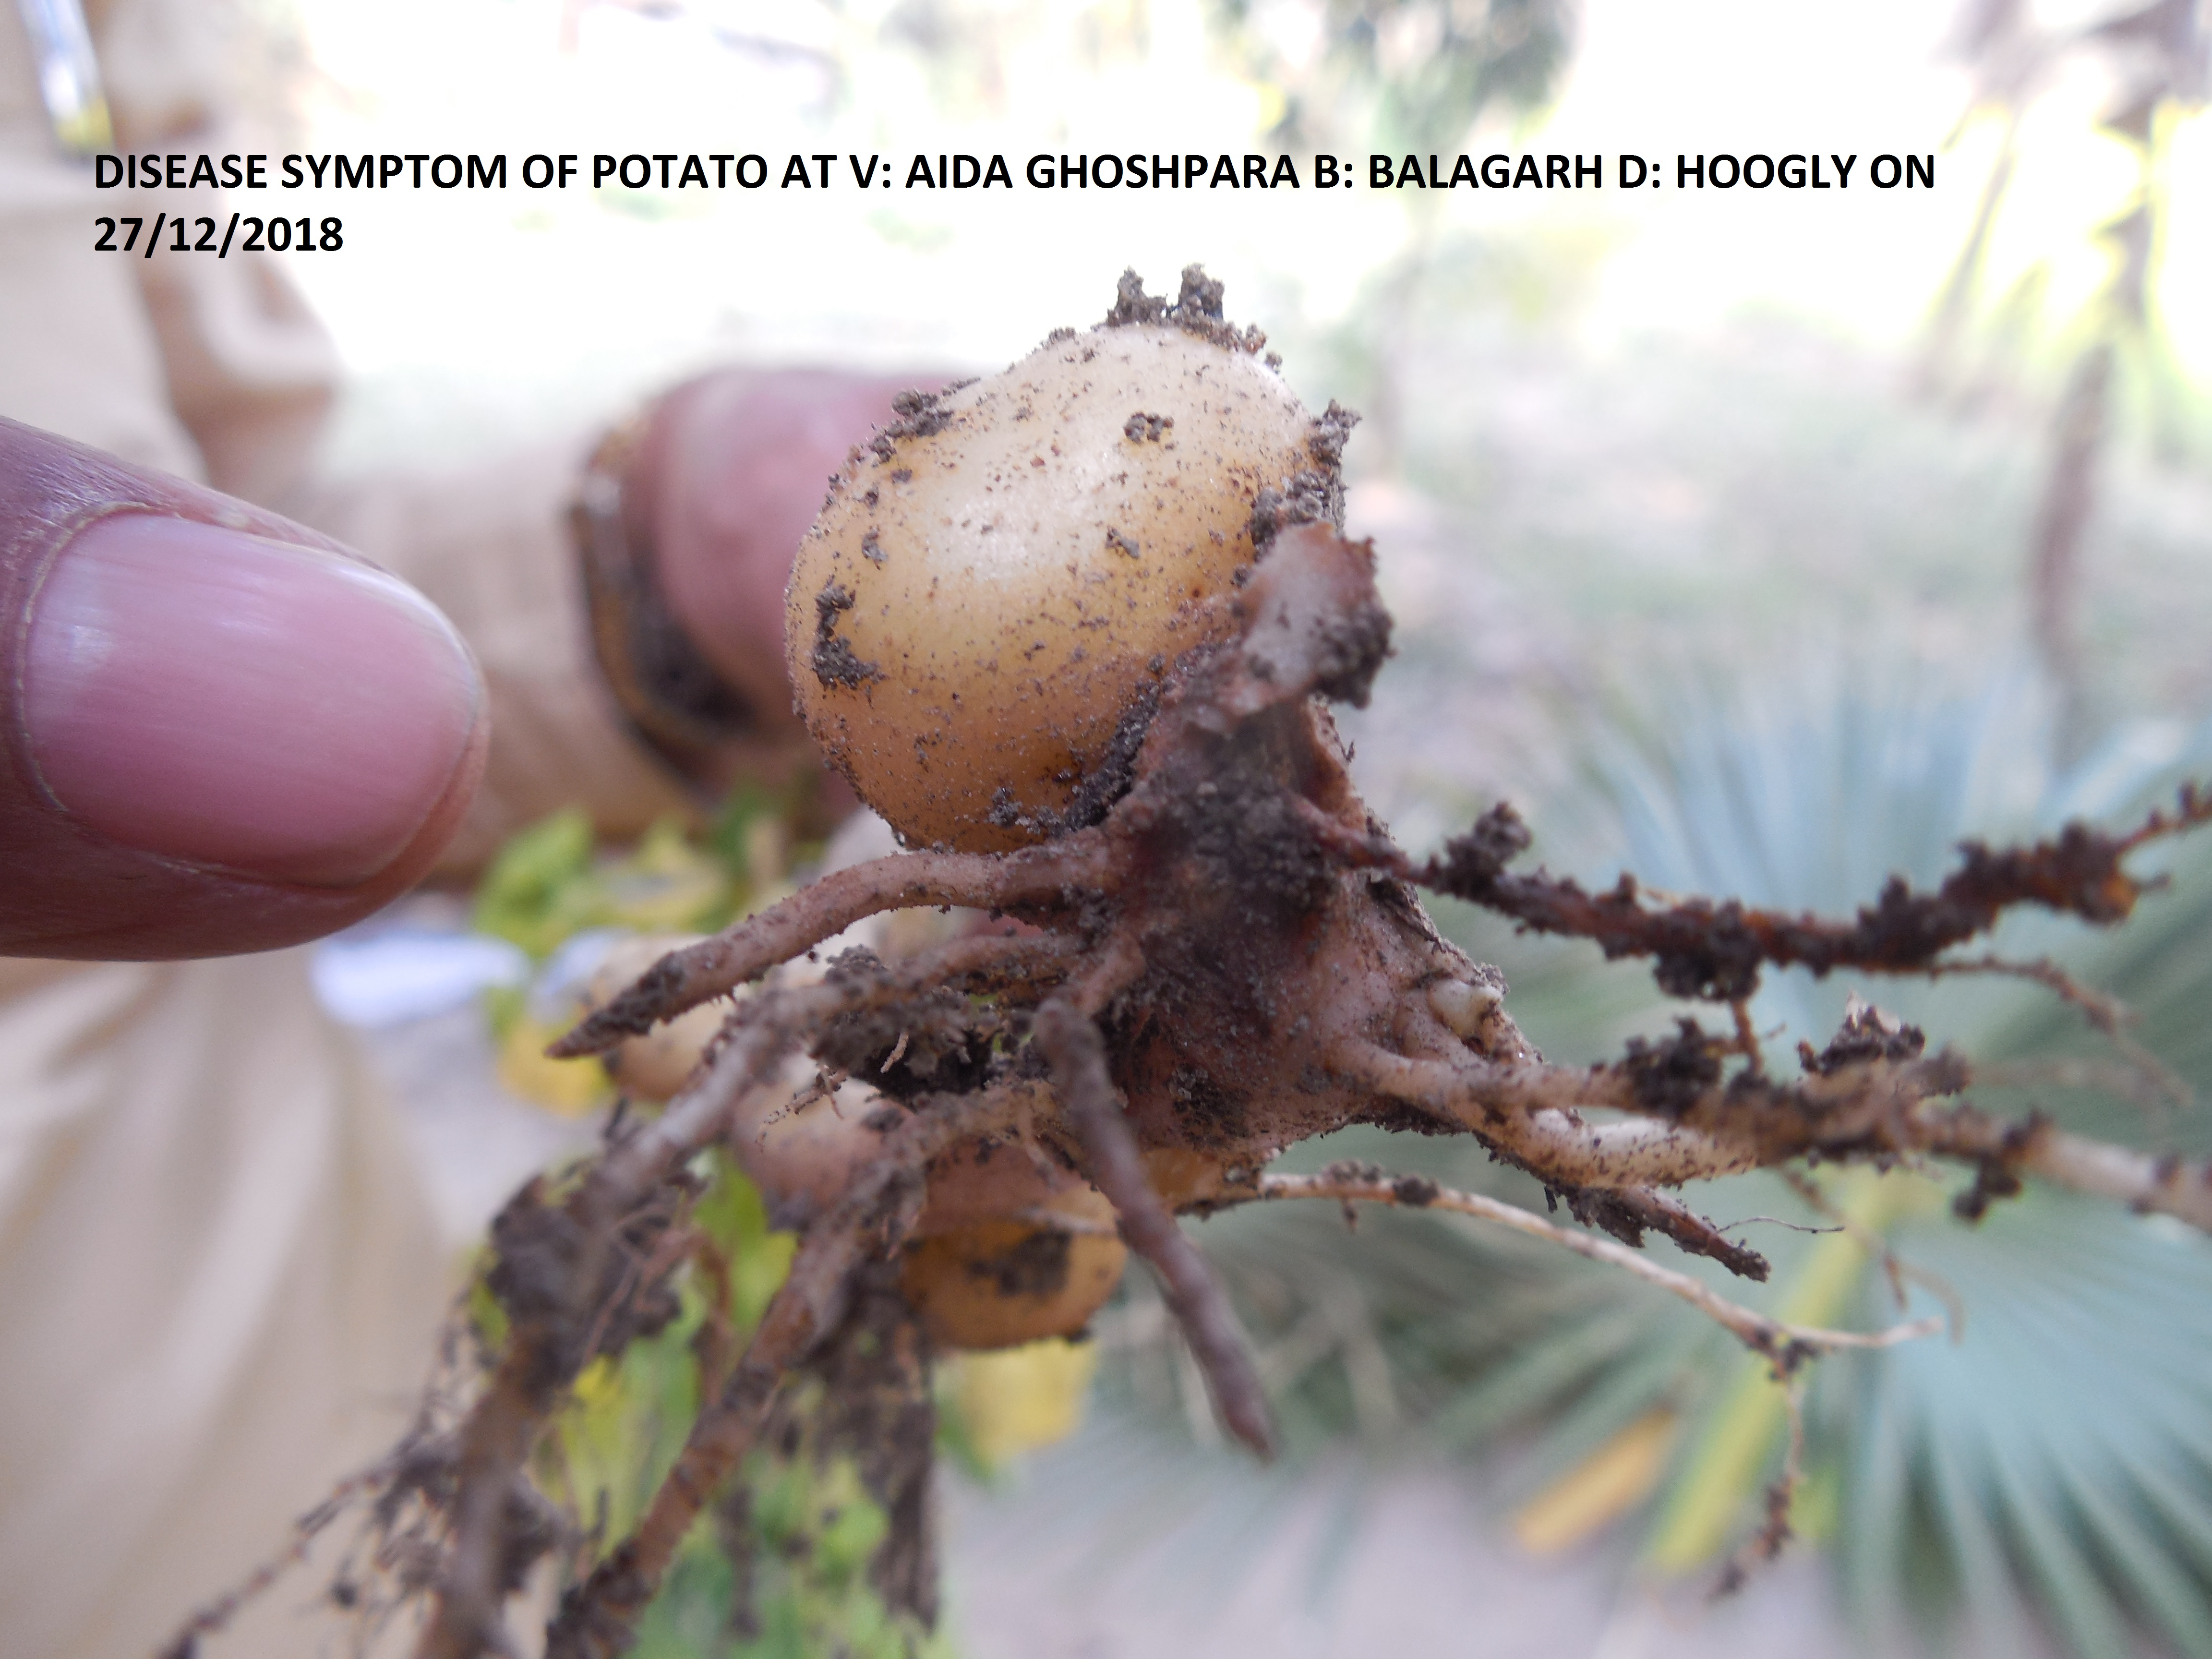 Disease symptom of Potato